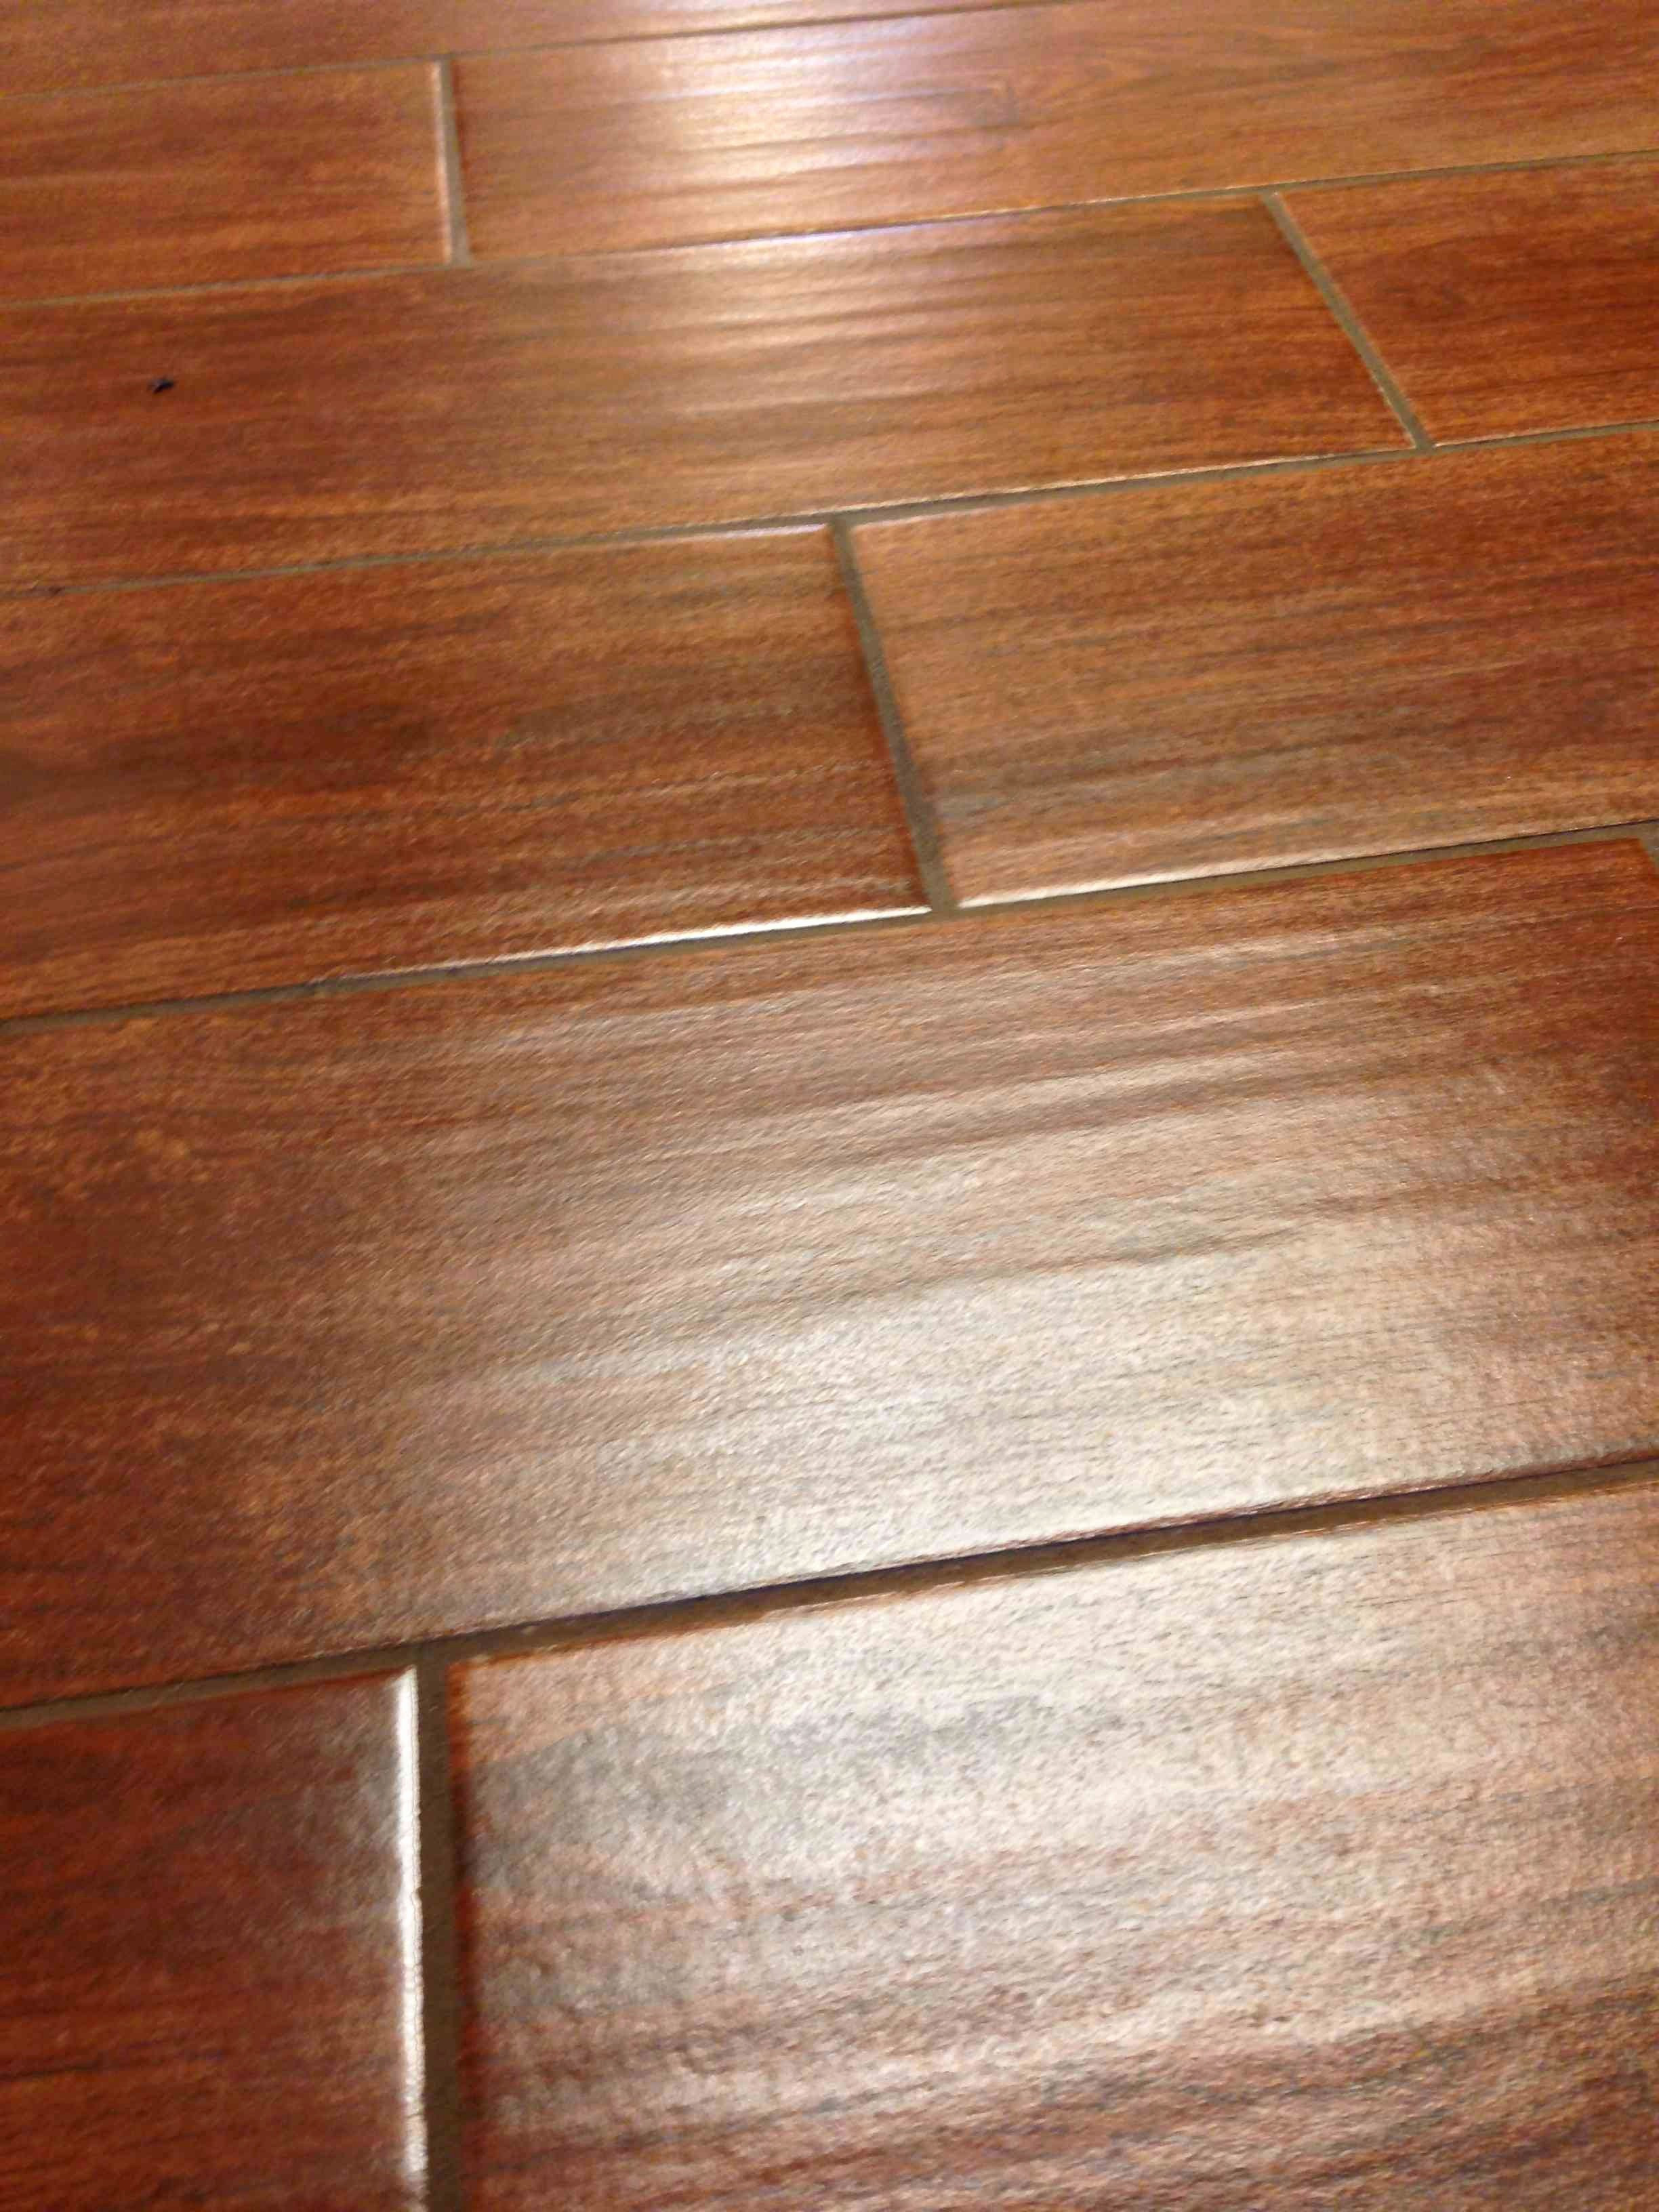 Laminate Hardwood Floor Scratch Repair Of 13 Luxury Repair Hardwood Floor Collection Dizpos Com In Repair Hardwood Floor Unique Wood Floor Store Stock Of 13 Luxury Repair Hardwood Floor Collection